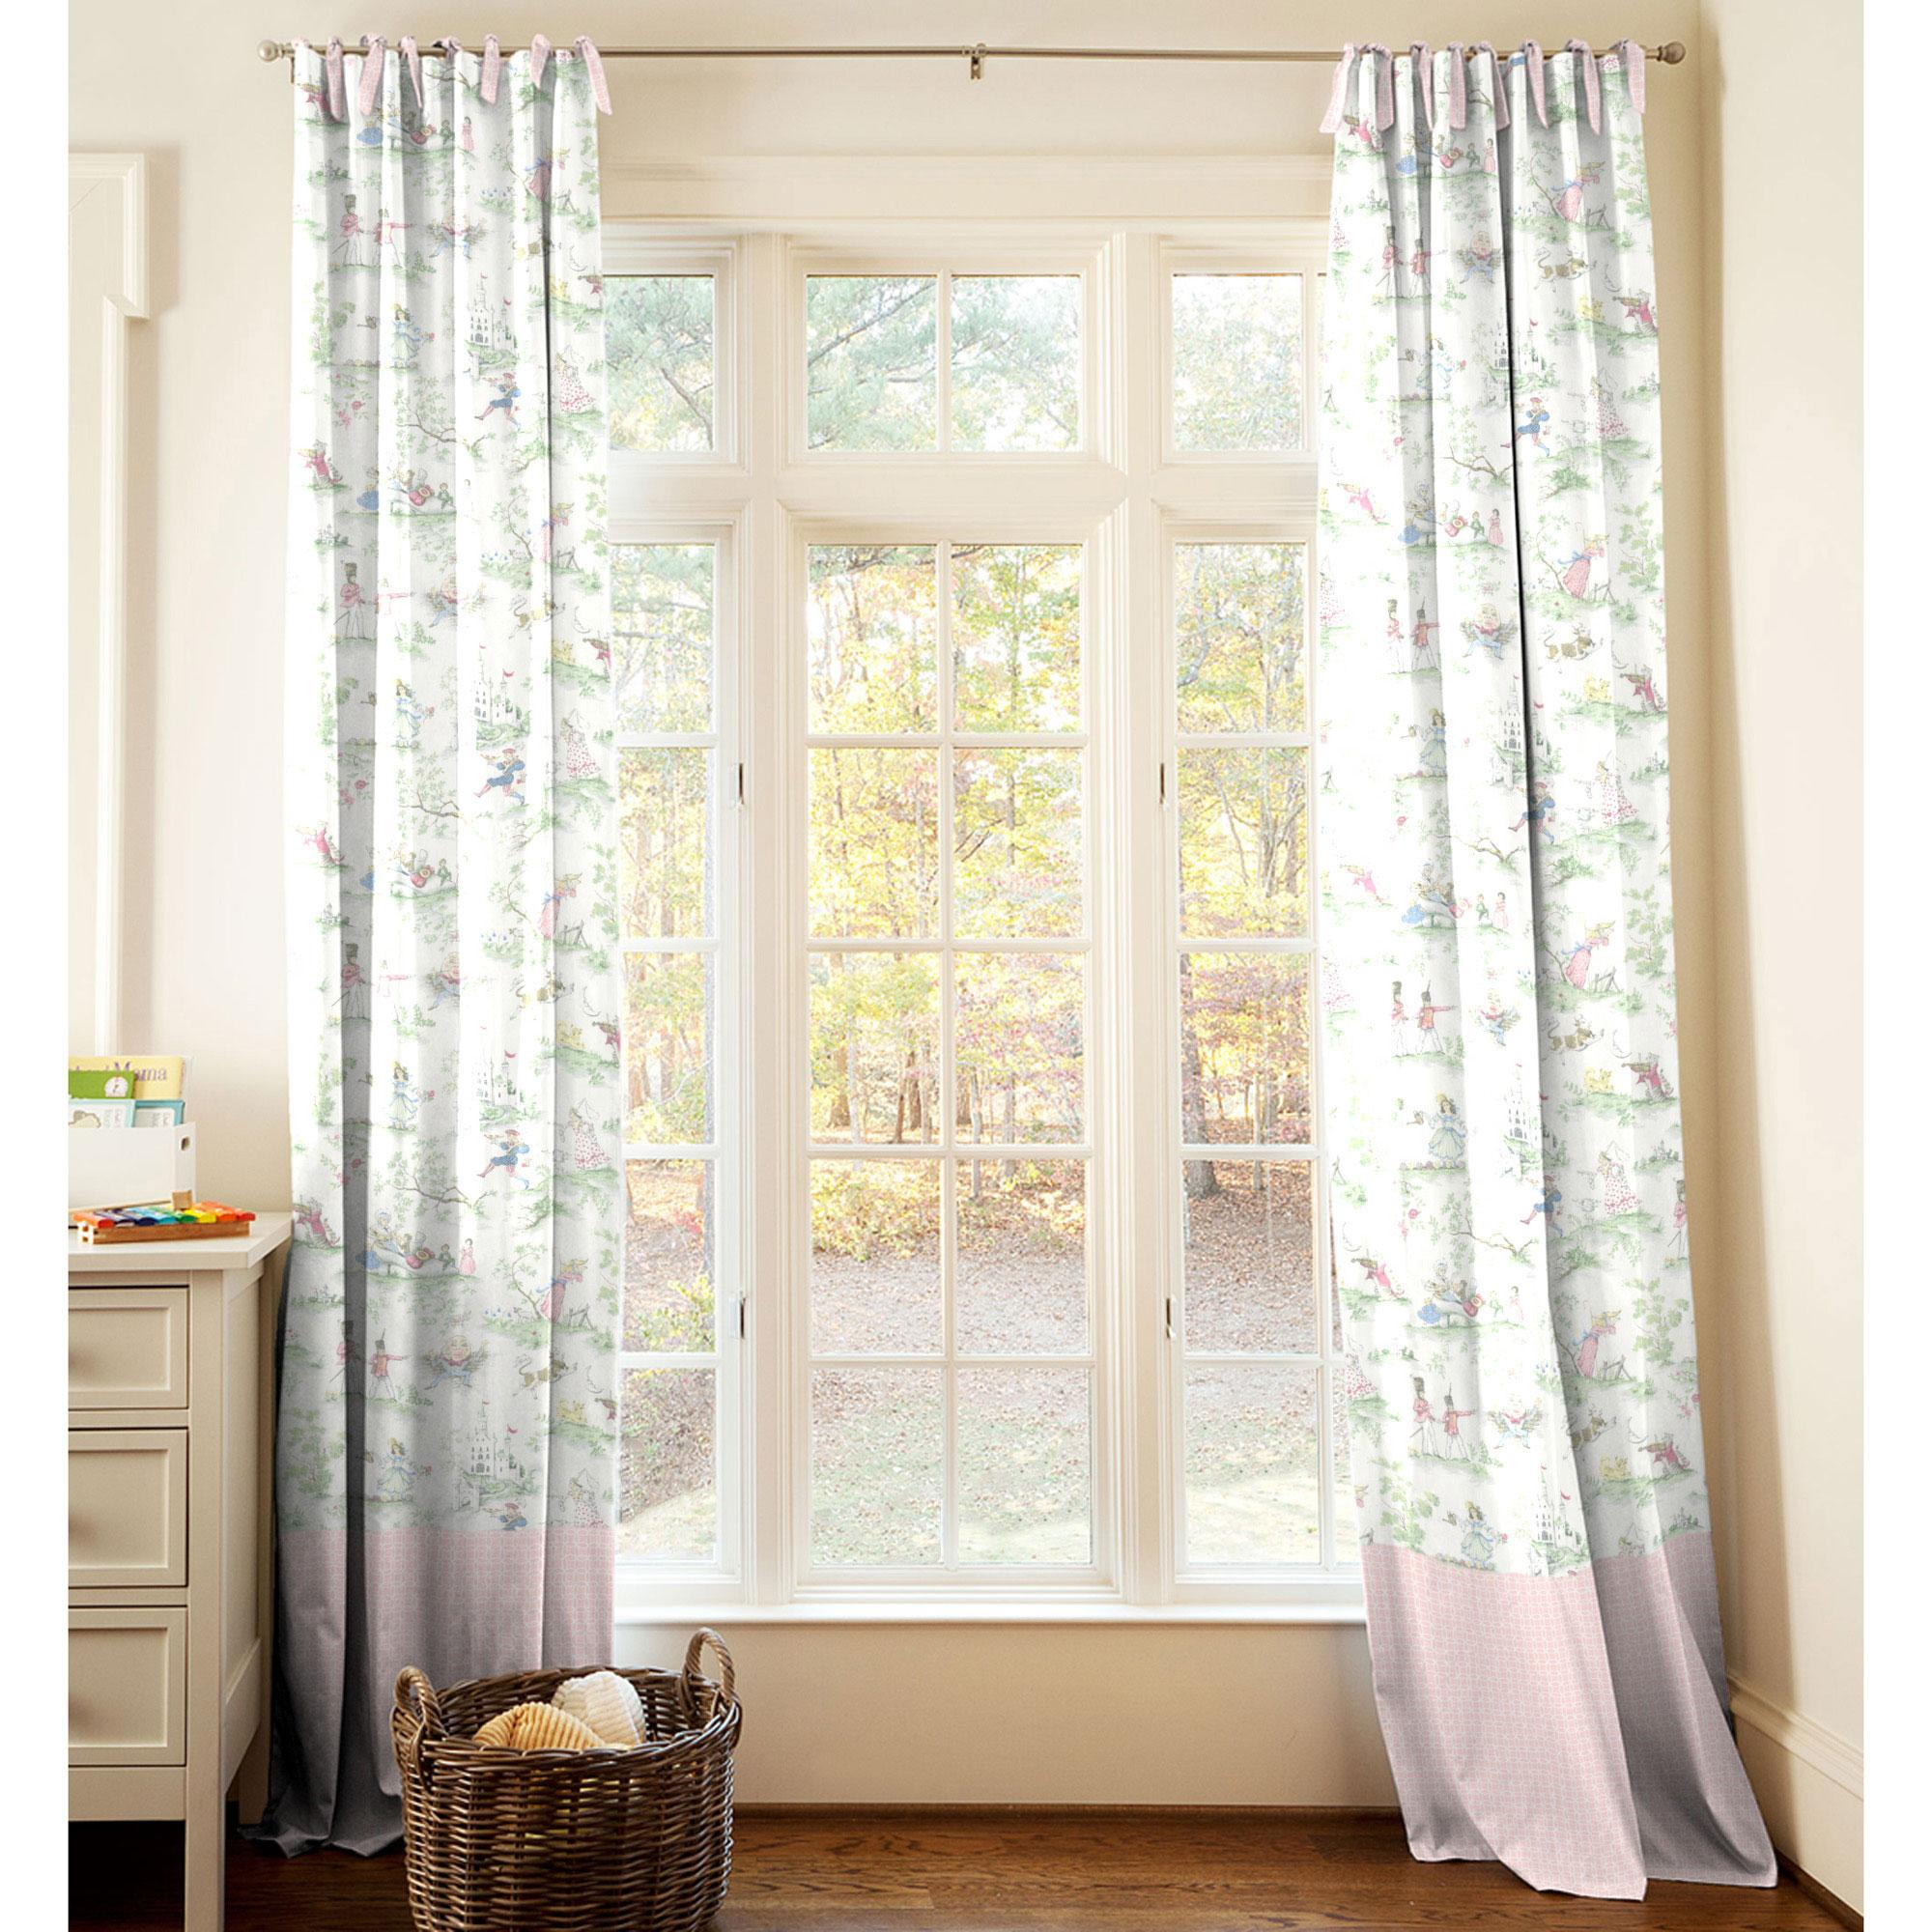 size design sheer elegant darkening valances draperies for curtain pictures of living curtains kohls room full target and ideas walmart modern bedroom